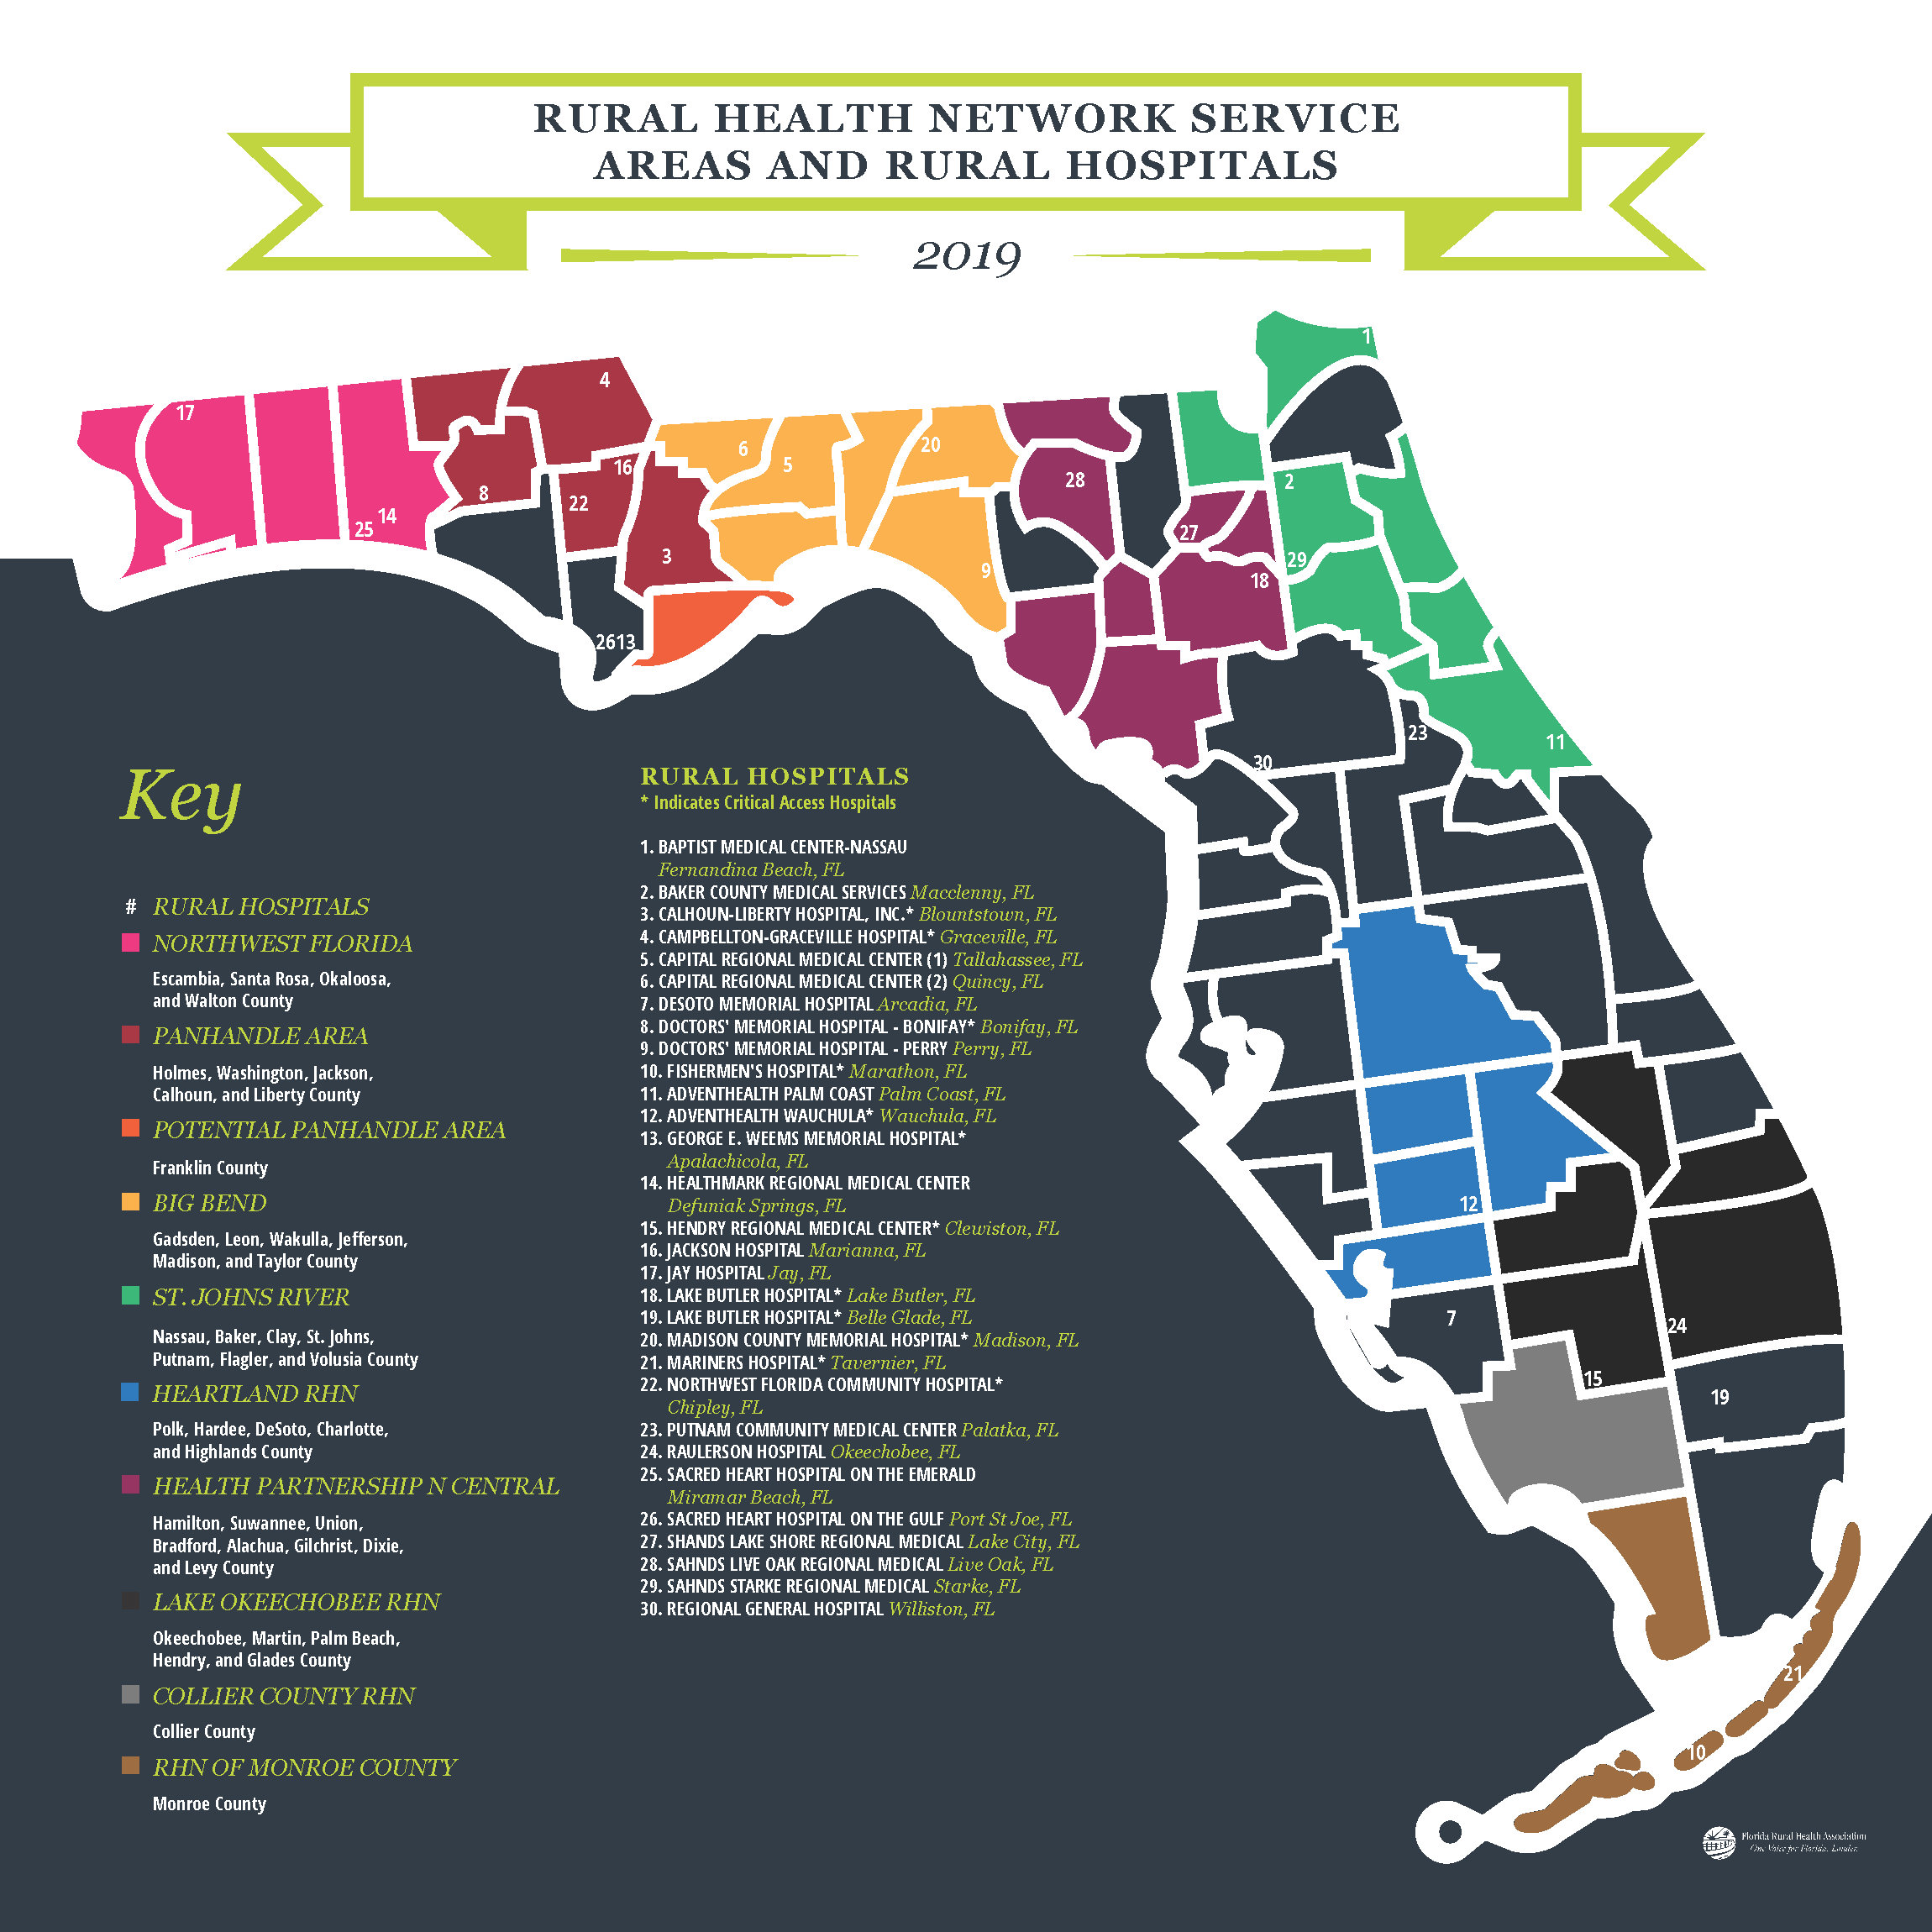 Map of Rural Health Network Service Areas & Rural Hospitals